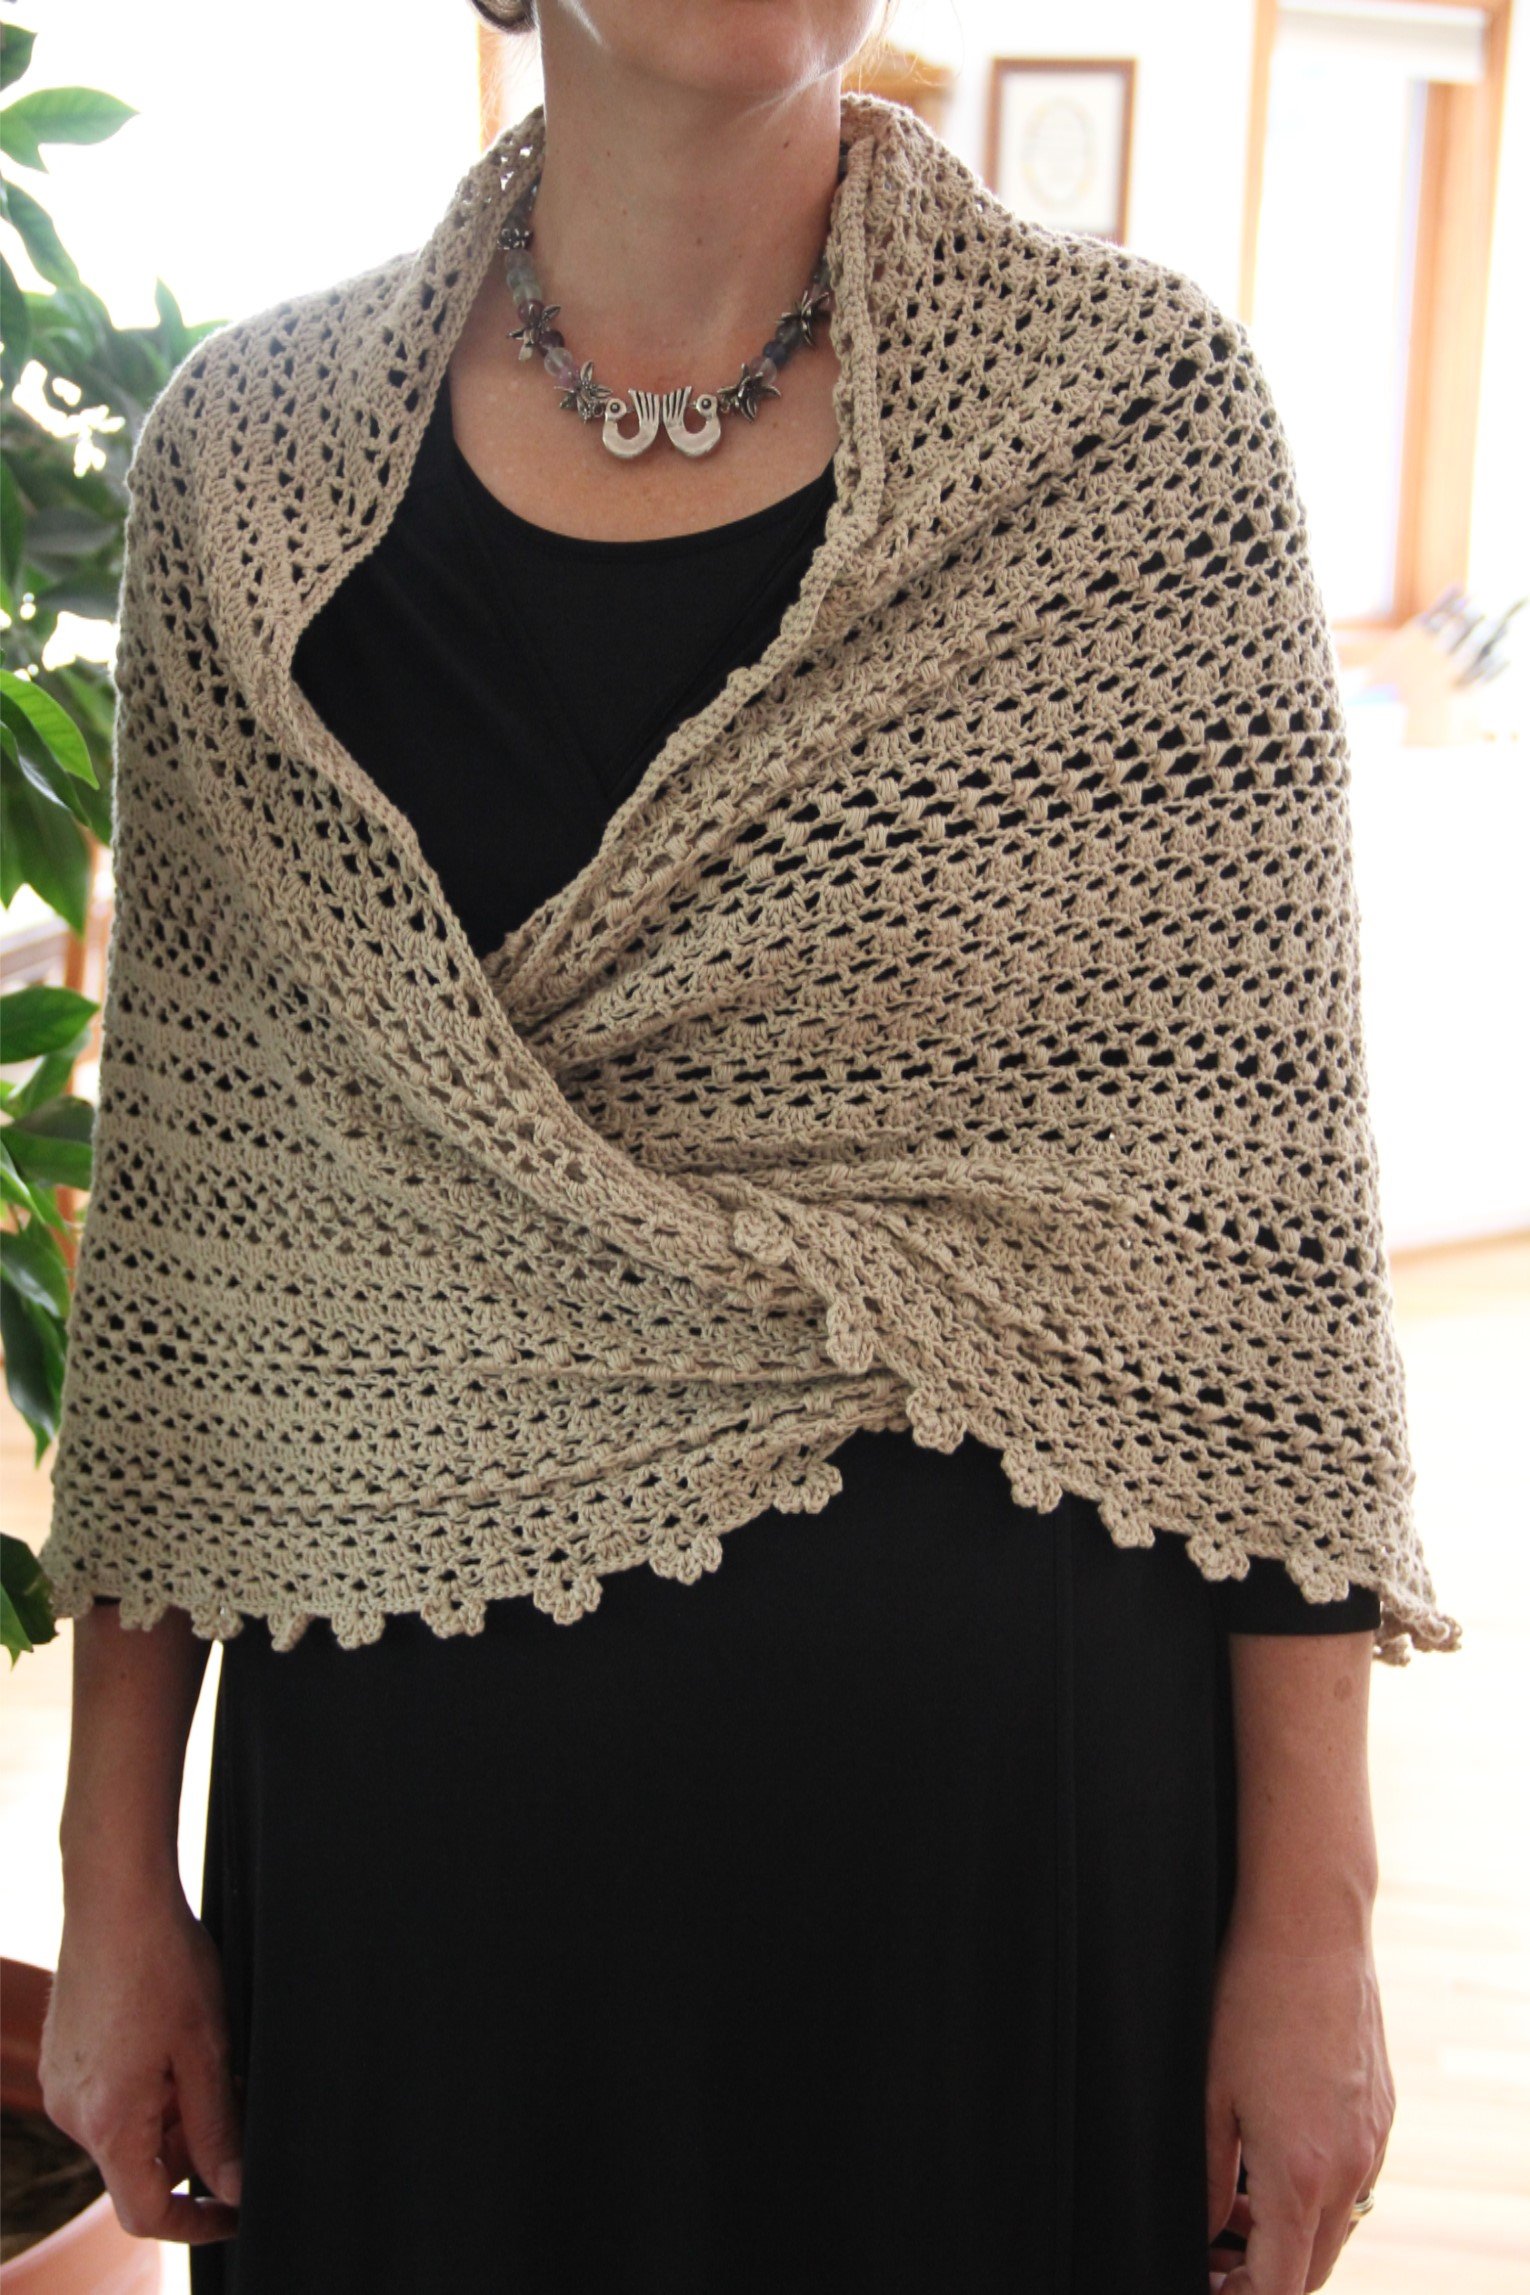 Free Crochet Shawl Pattern Worked In A Basic Trellis Pattern Pictures ...